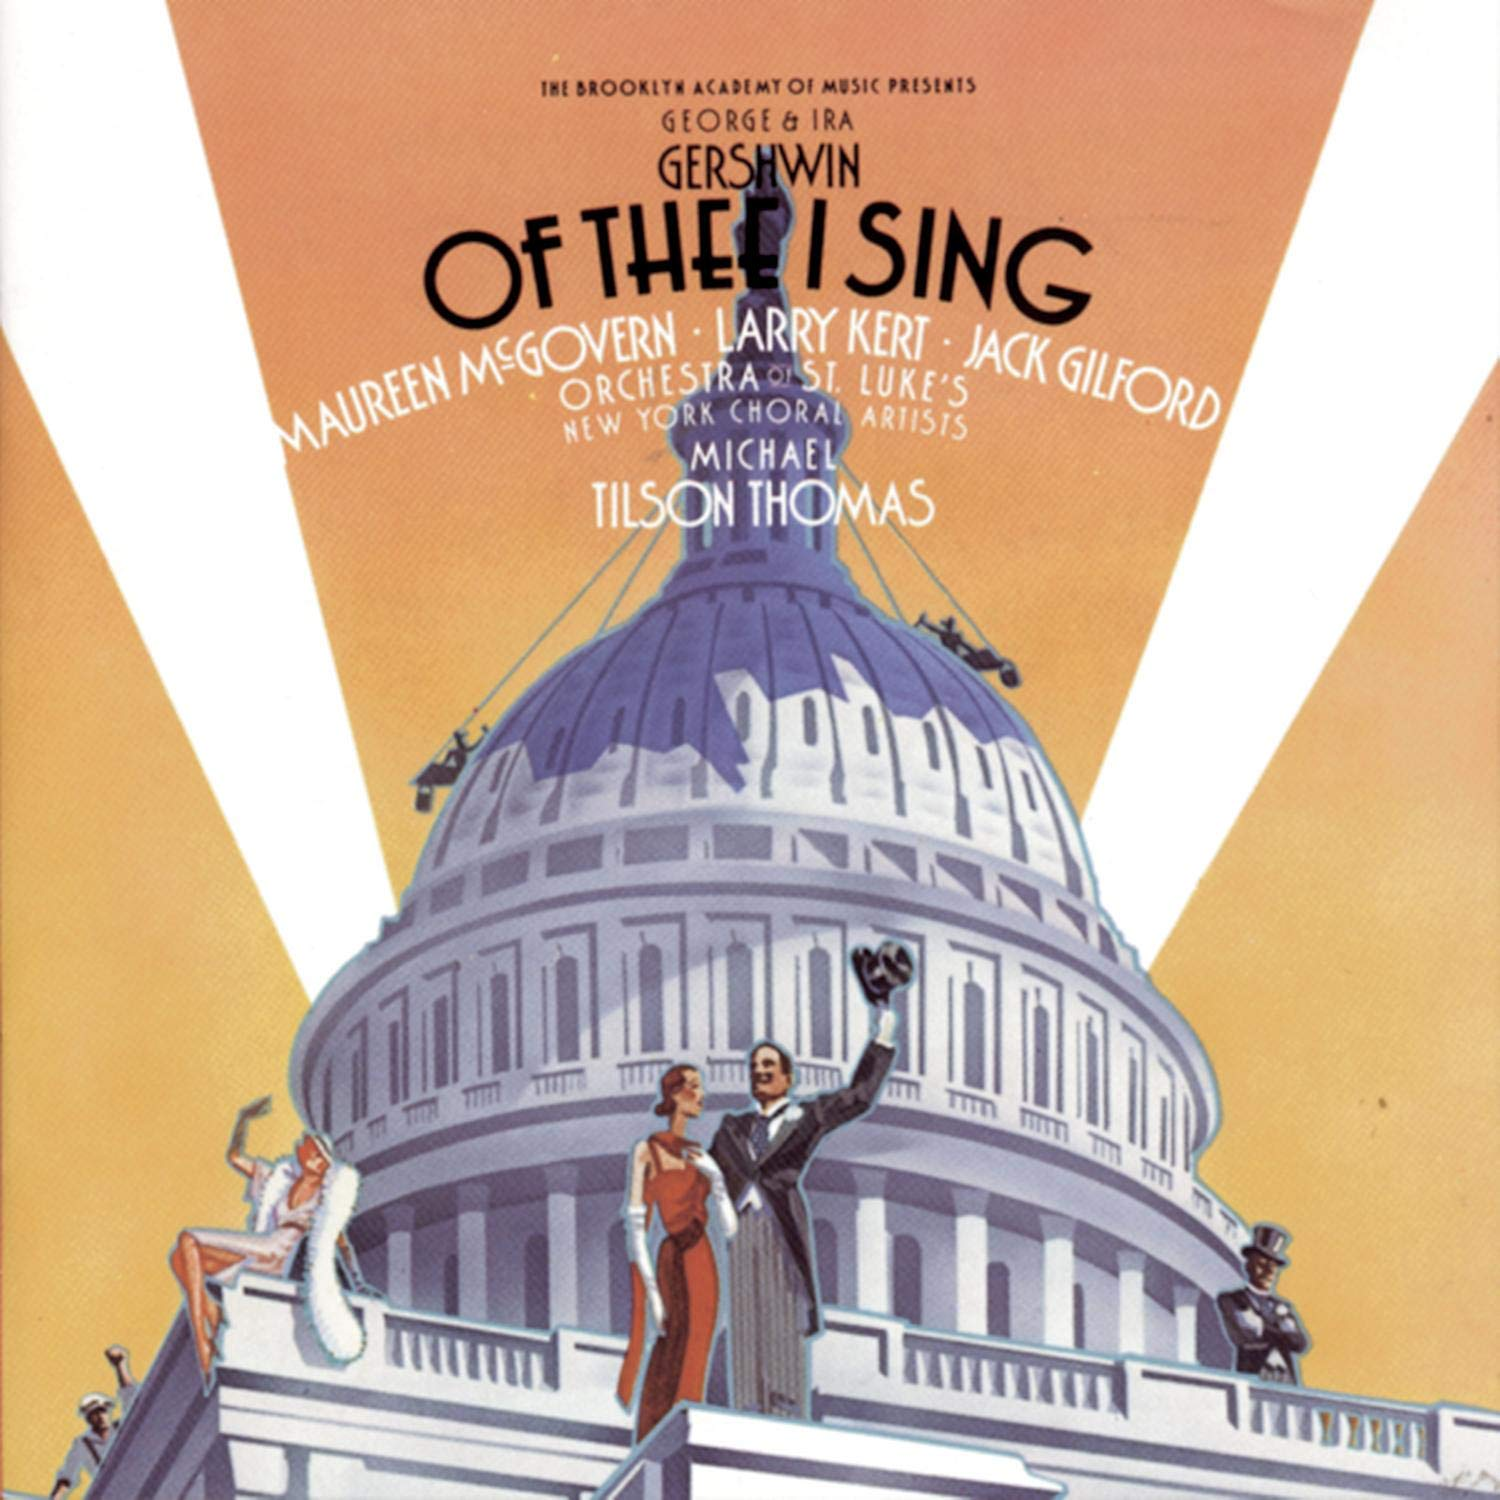 Of Thee I Sing / Let 'em Eat Cake (1987 Studio Recording) by Sony Classical